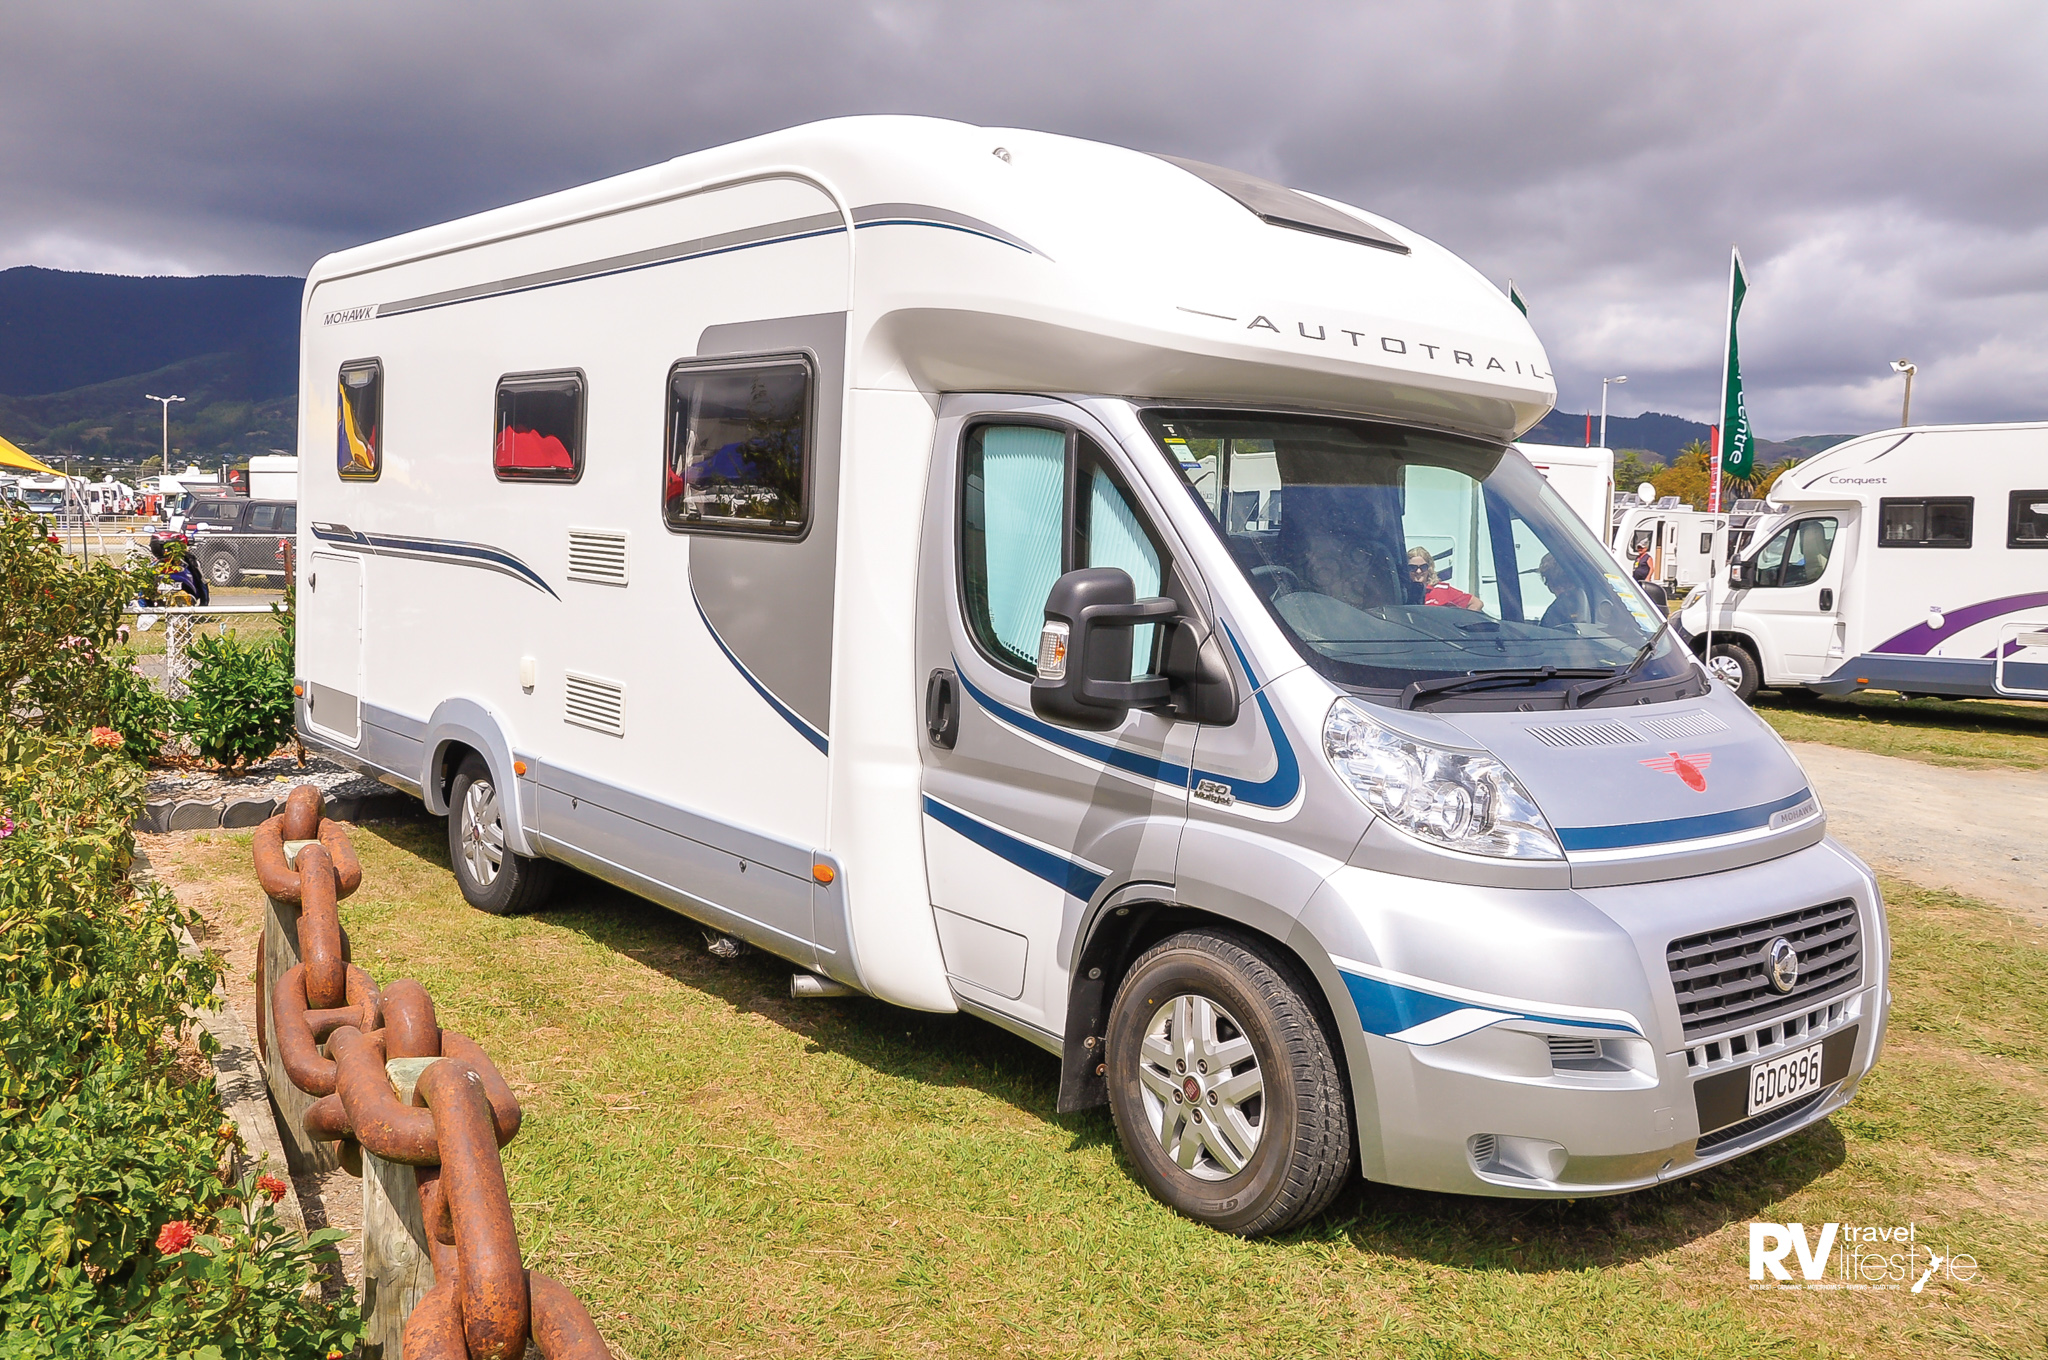 RV Leisure Centre in Nelson kindly lent us this 2011 model Auto Trail motorhome to work out of for the NZMCA AGM rally, so kind of them and the owner - thanks guys